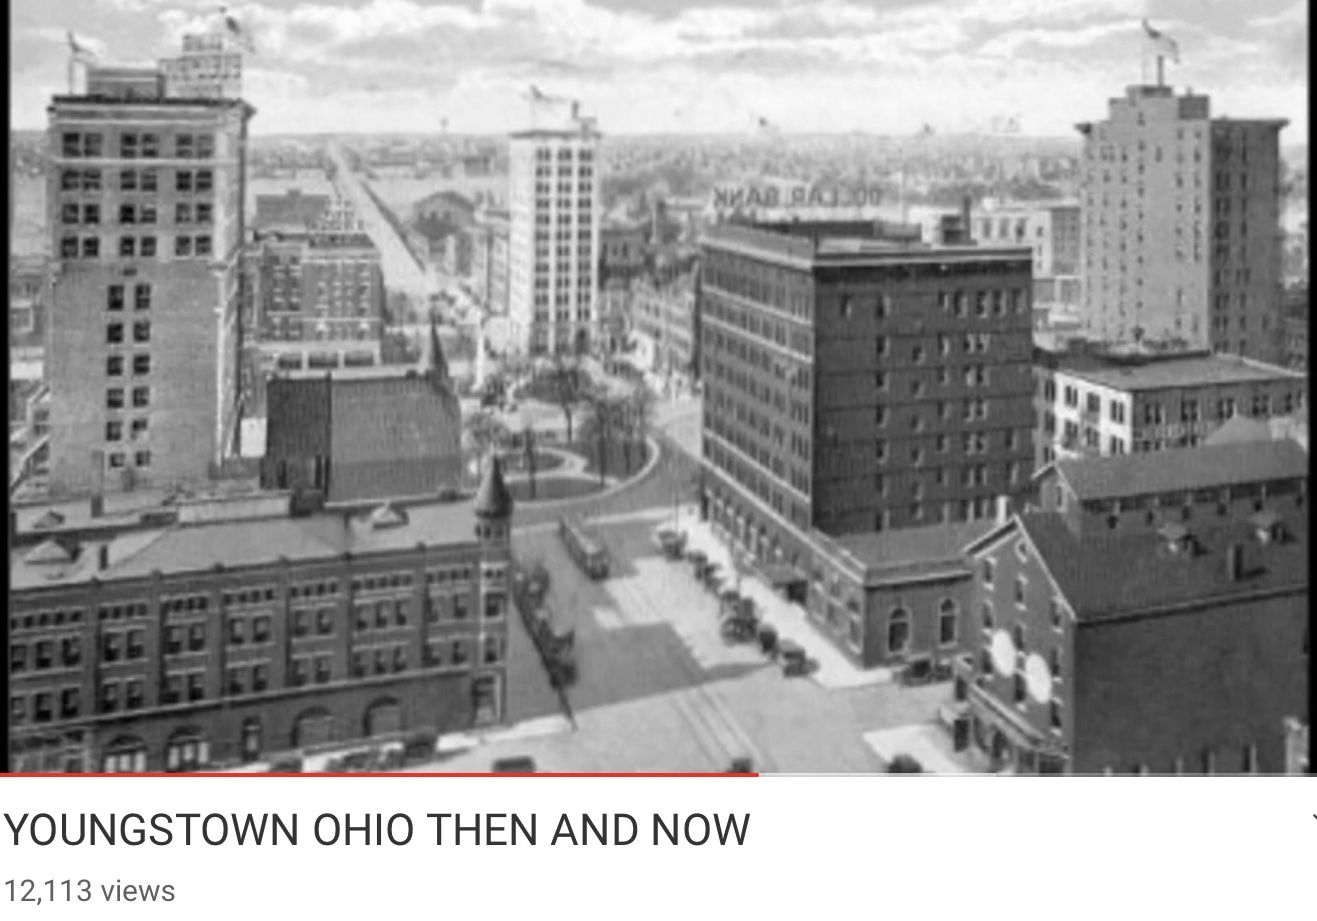 Drawing and destruction (part 1). Pin by Wittmansullivan on lost youngstown in 2021   Youngstown ohio, Youngstown, Ohio